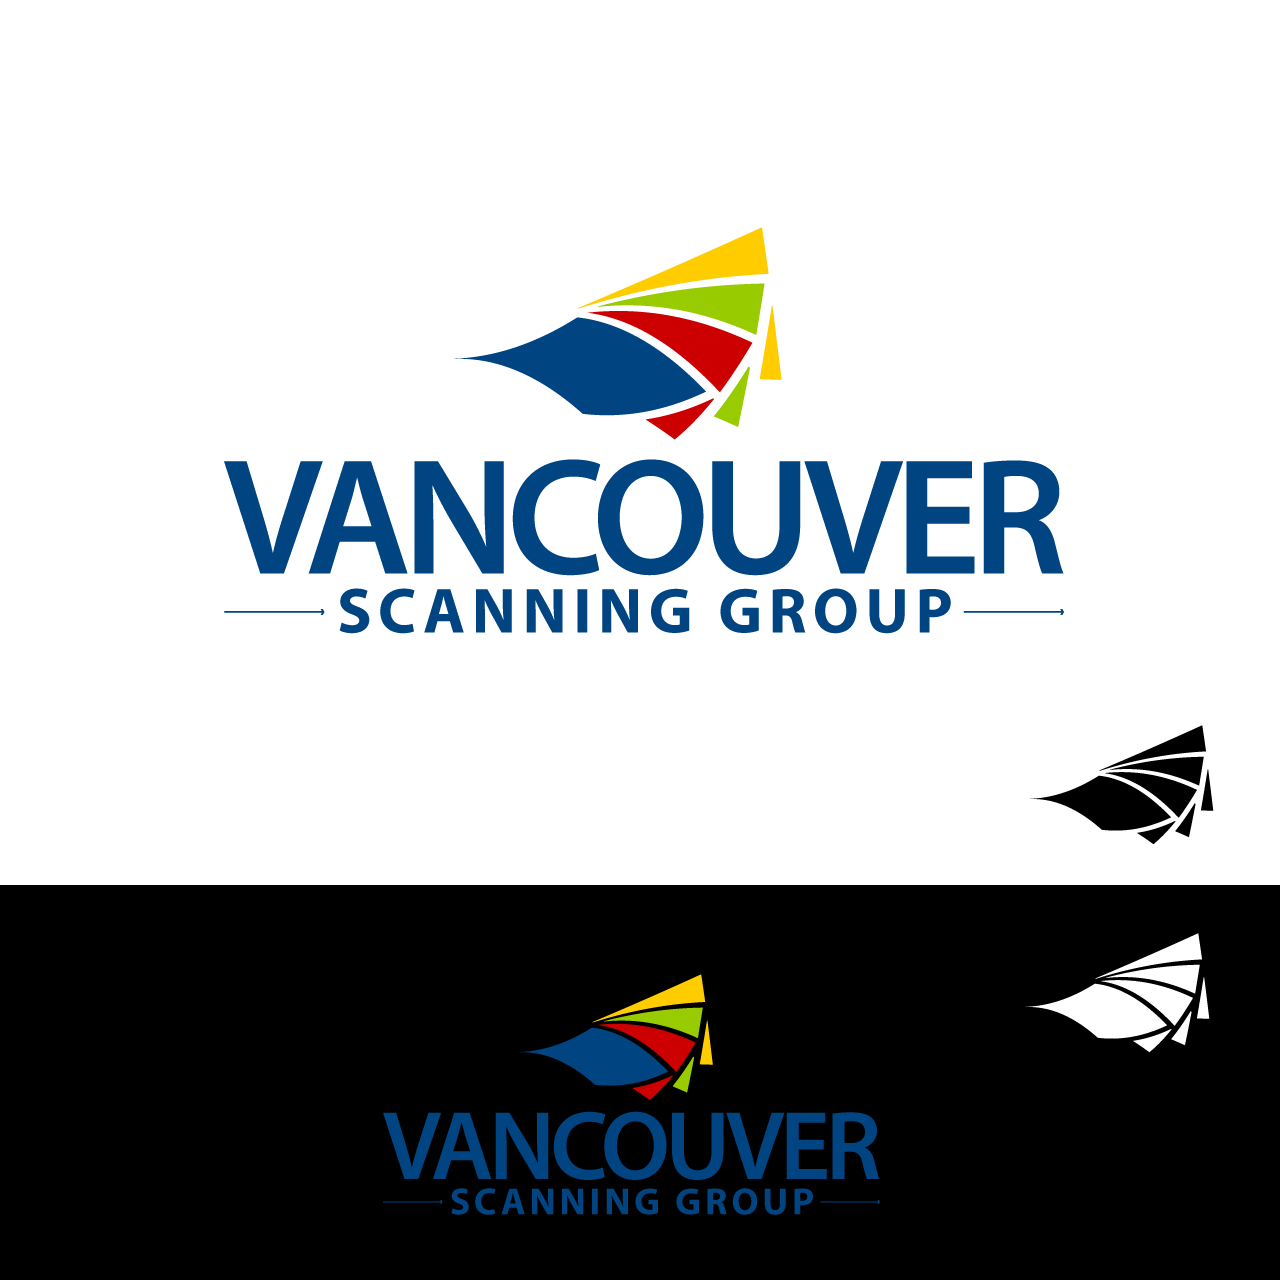 Logo Design by umxca - Entry No. 91 in the Logo Design Contest Vancouver Scanning Group.